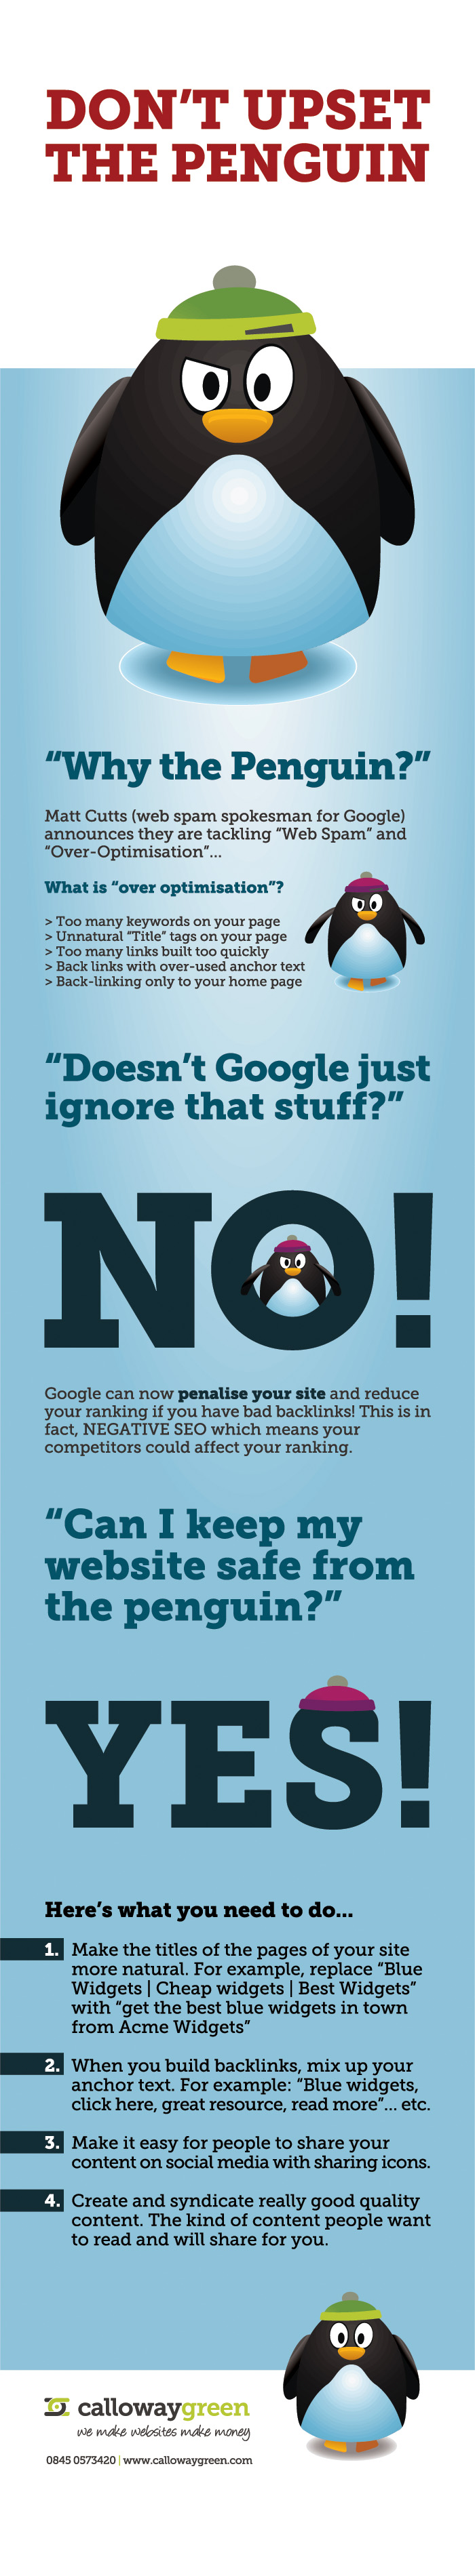 How to Make the Google Penguin Happy Infographic